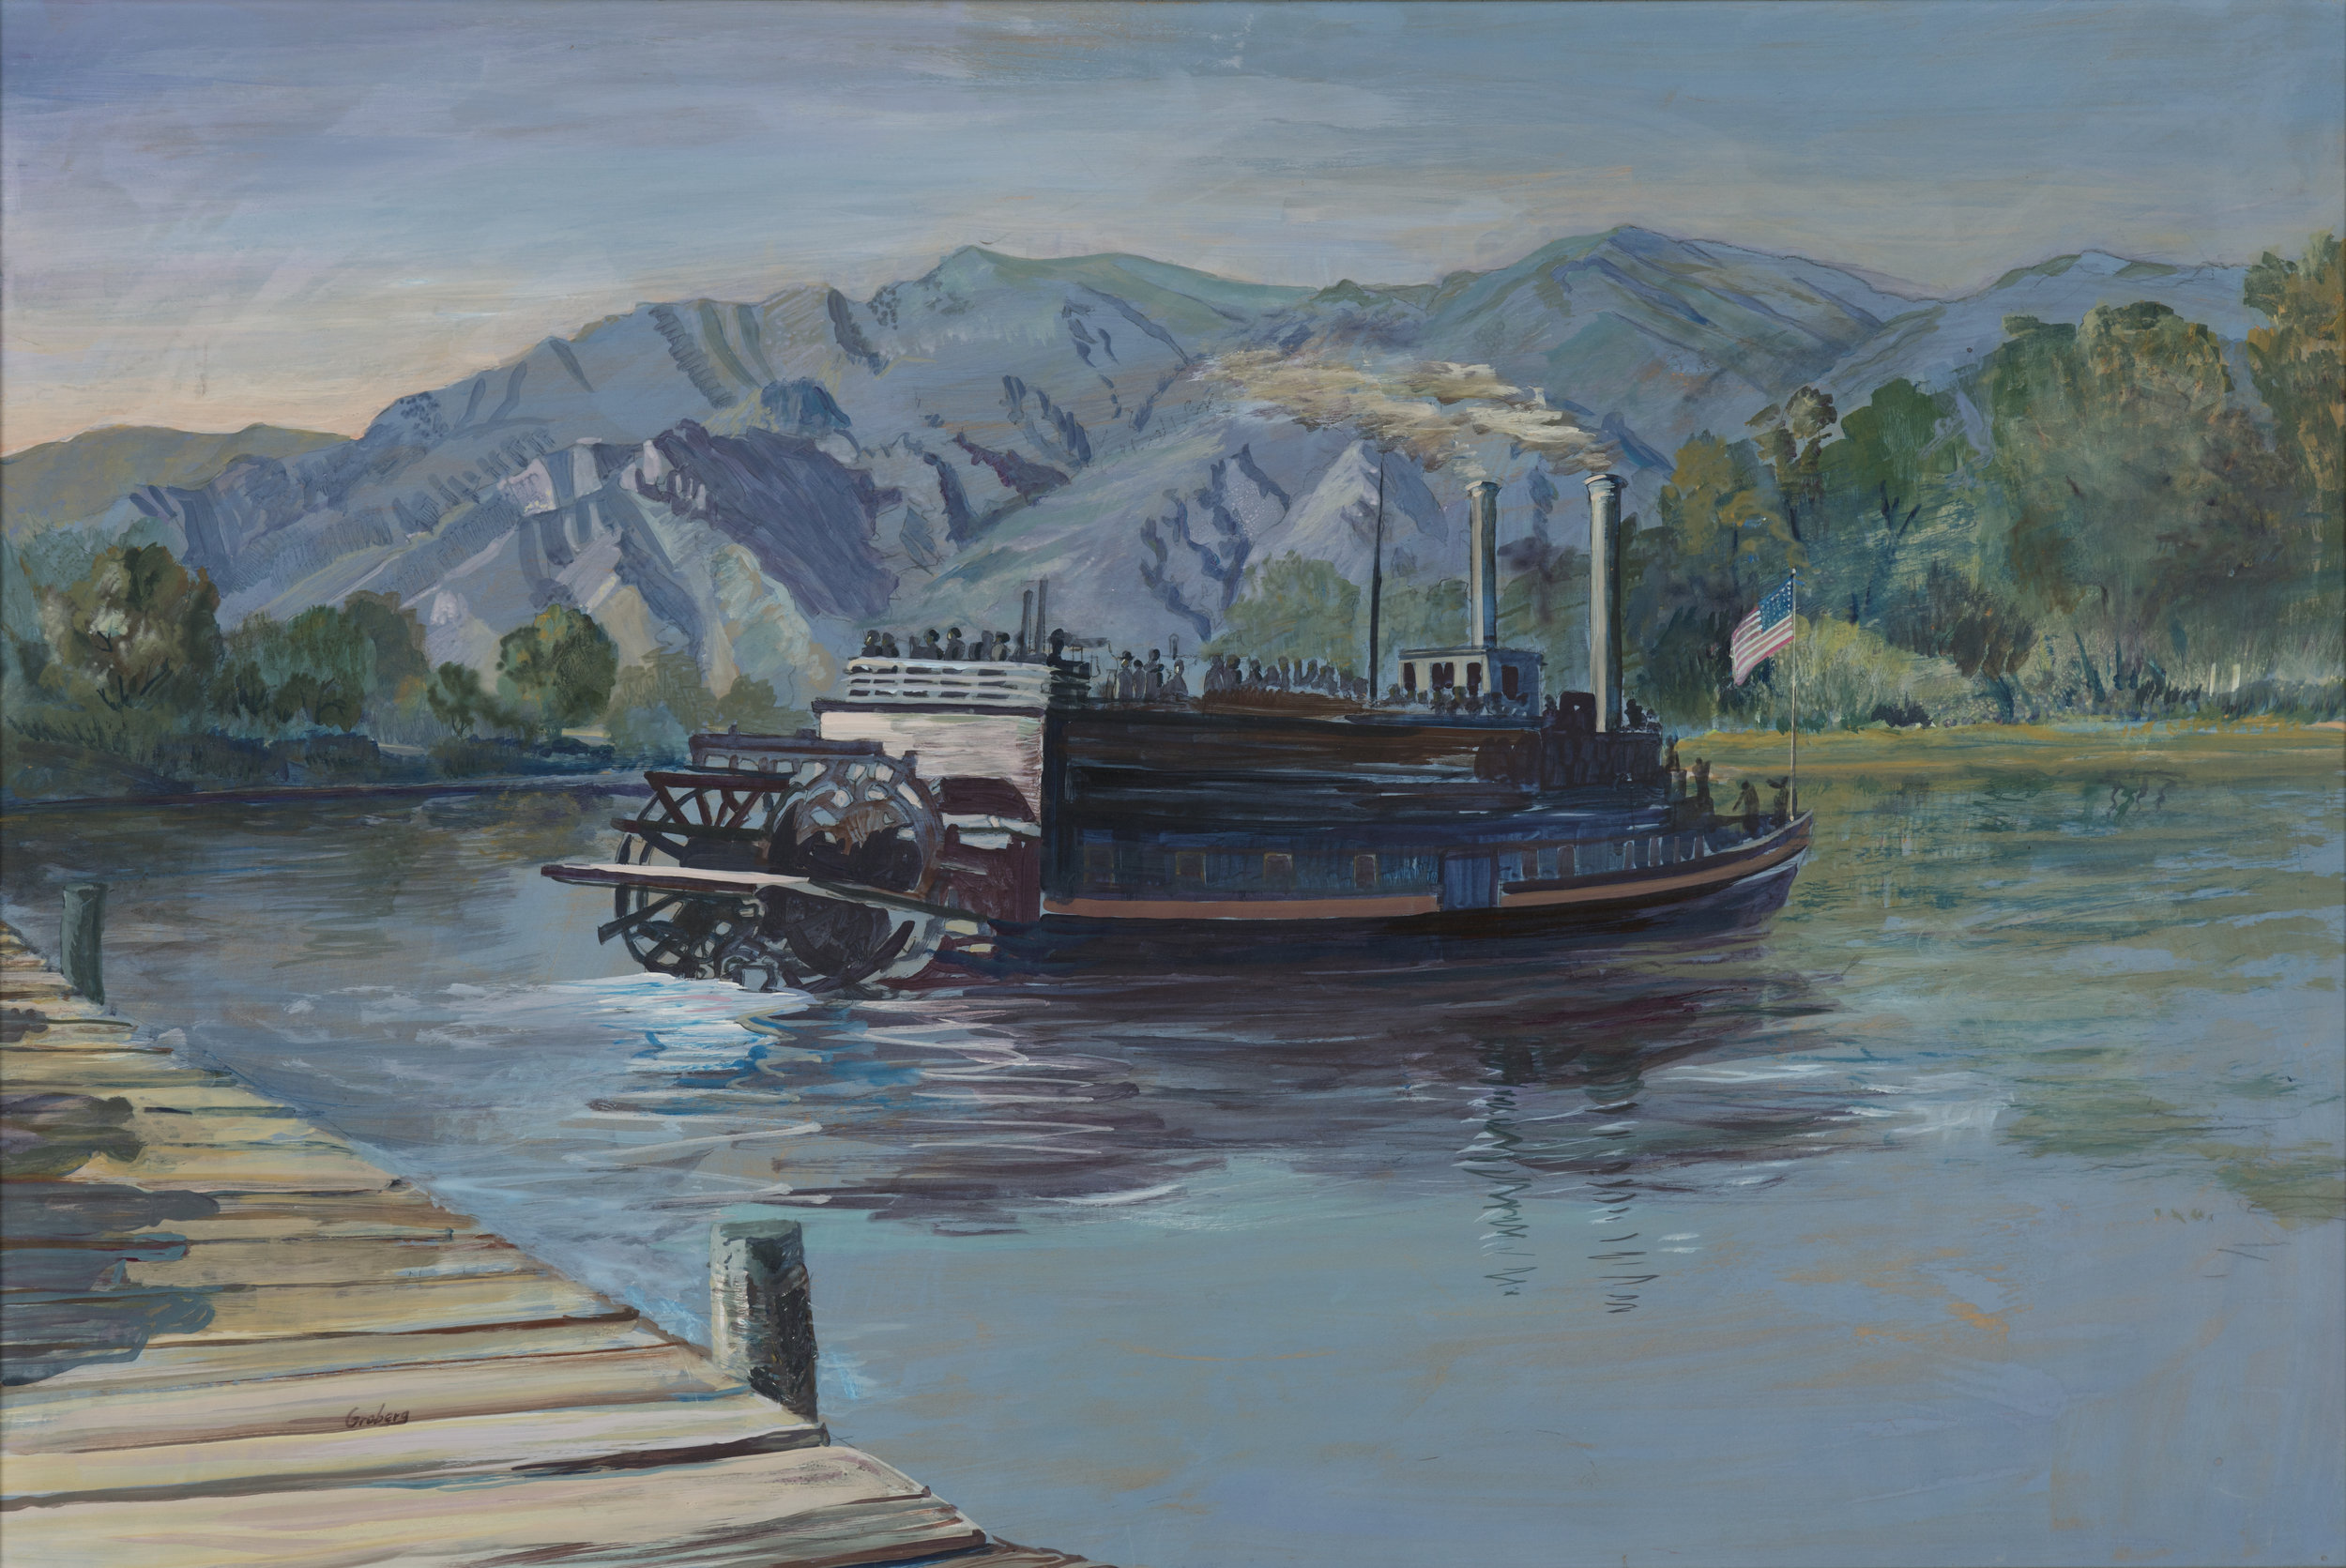 """City of Corinne - Paddle Wheeler"" by Charles A. Groberg. Courtesy of Weber State University and Bill Child."